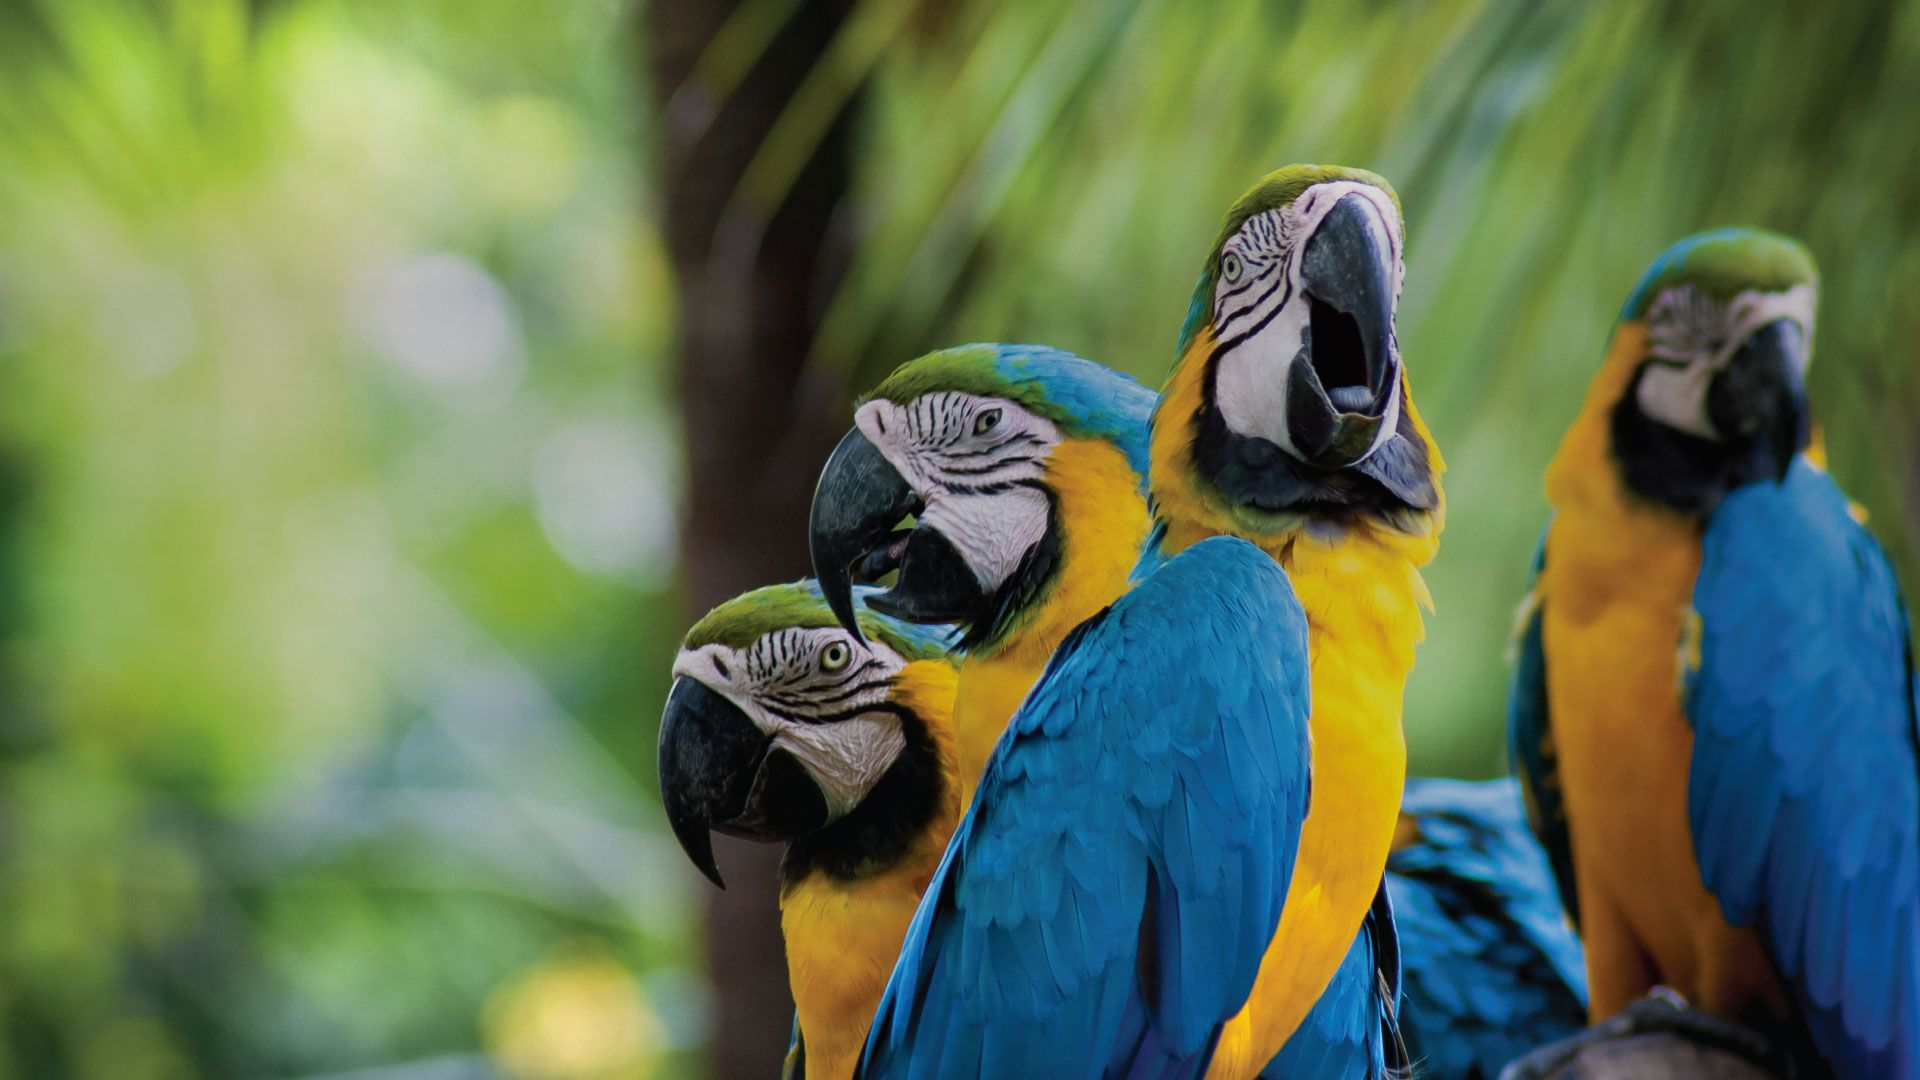 Parrot Macaw Wallpaper